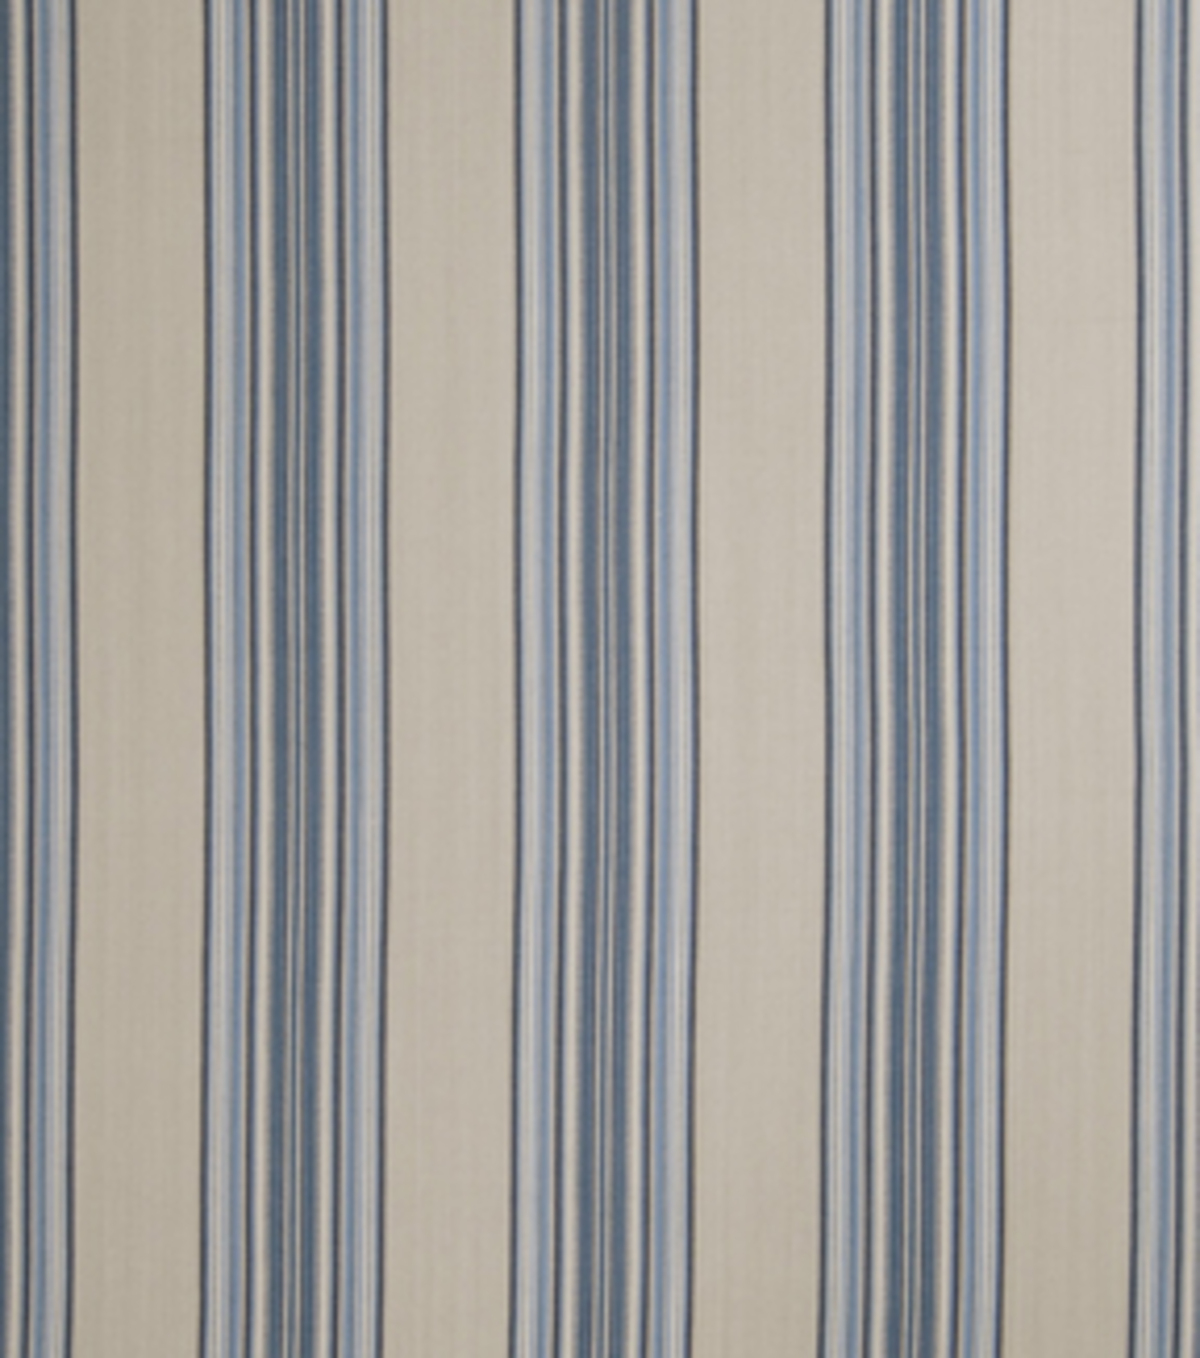 Home Decor 8\u0022x8\u0022 Fabric Swatch-Eaton Square Nashville Indigo